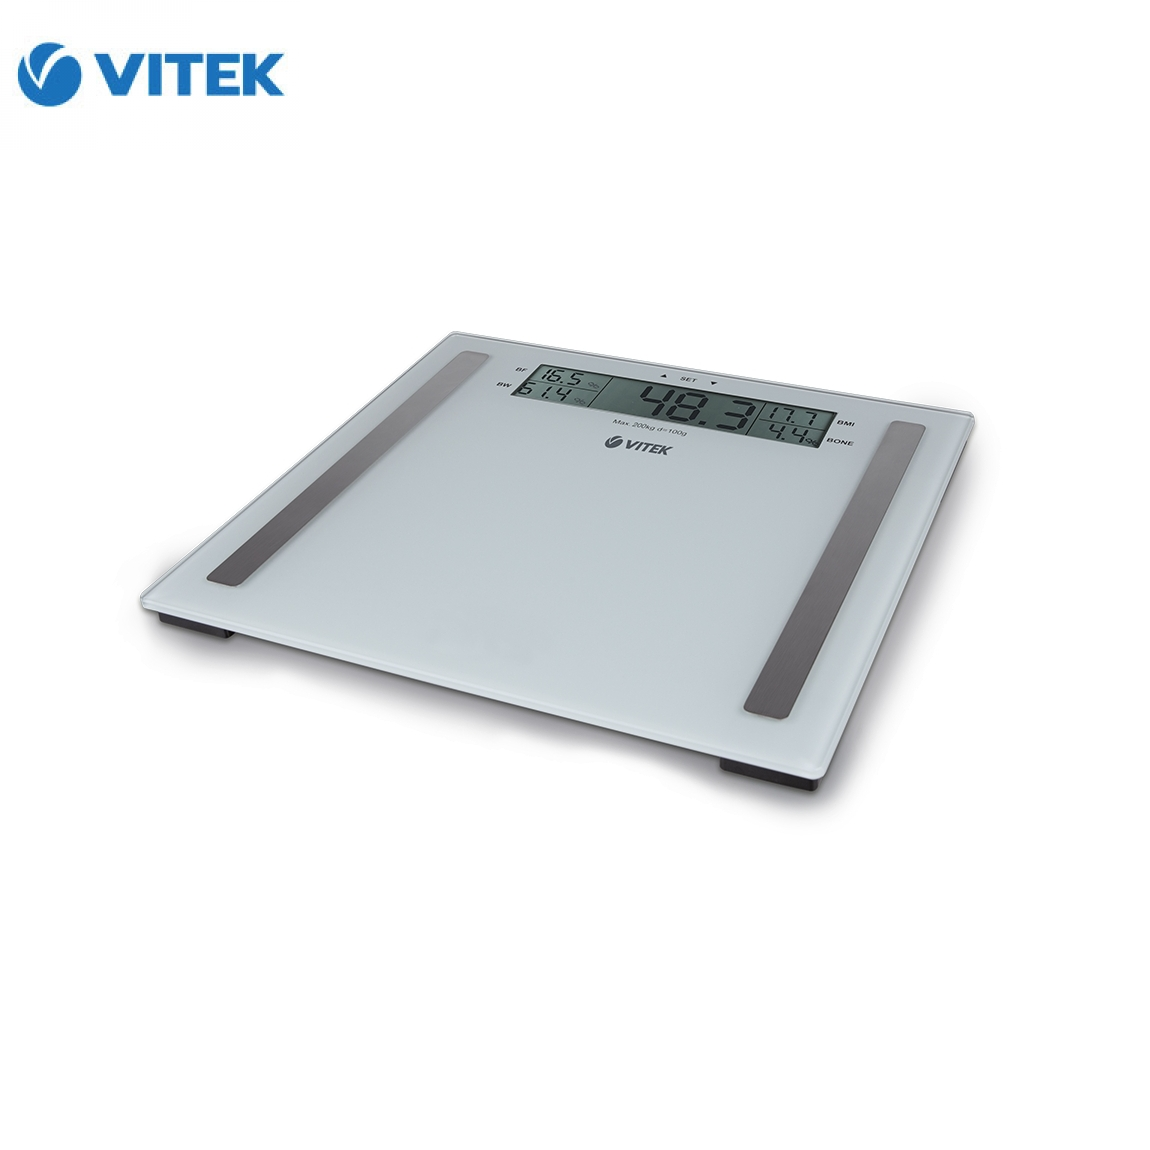 Floor scales VITEK VT 1967W e 200 kg glass-in Bathroom Scales from ...